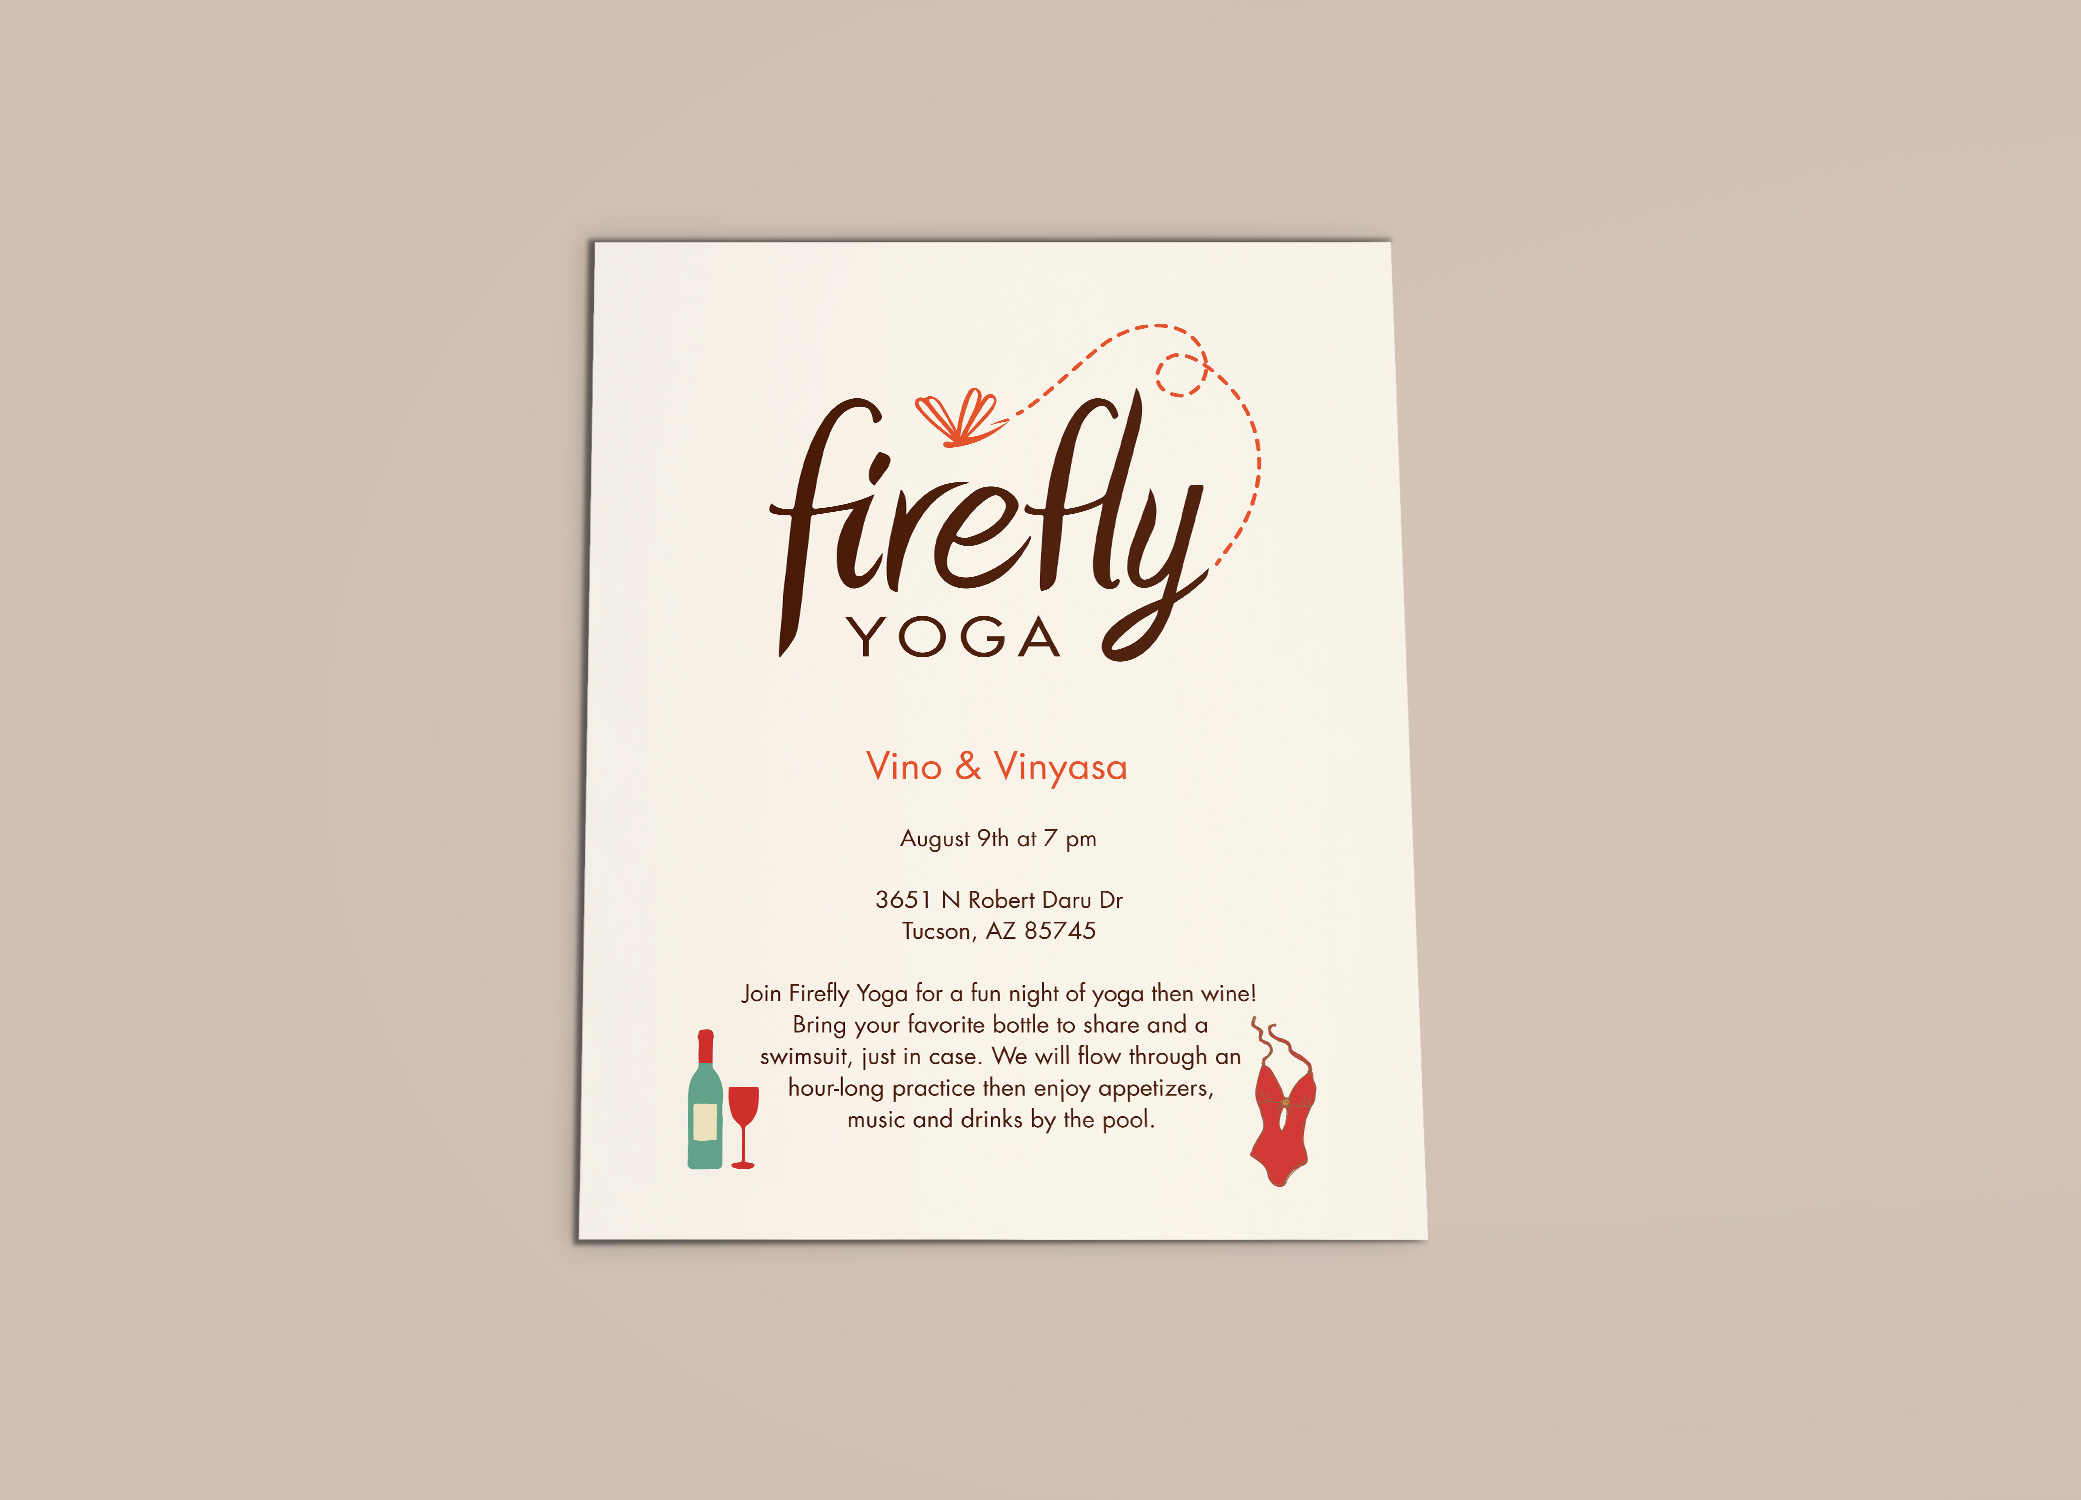 Firefly Yoga flyer promoting studio events against beige backdrop.